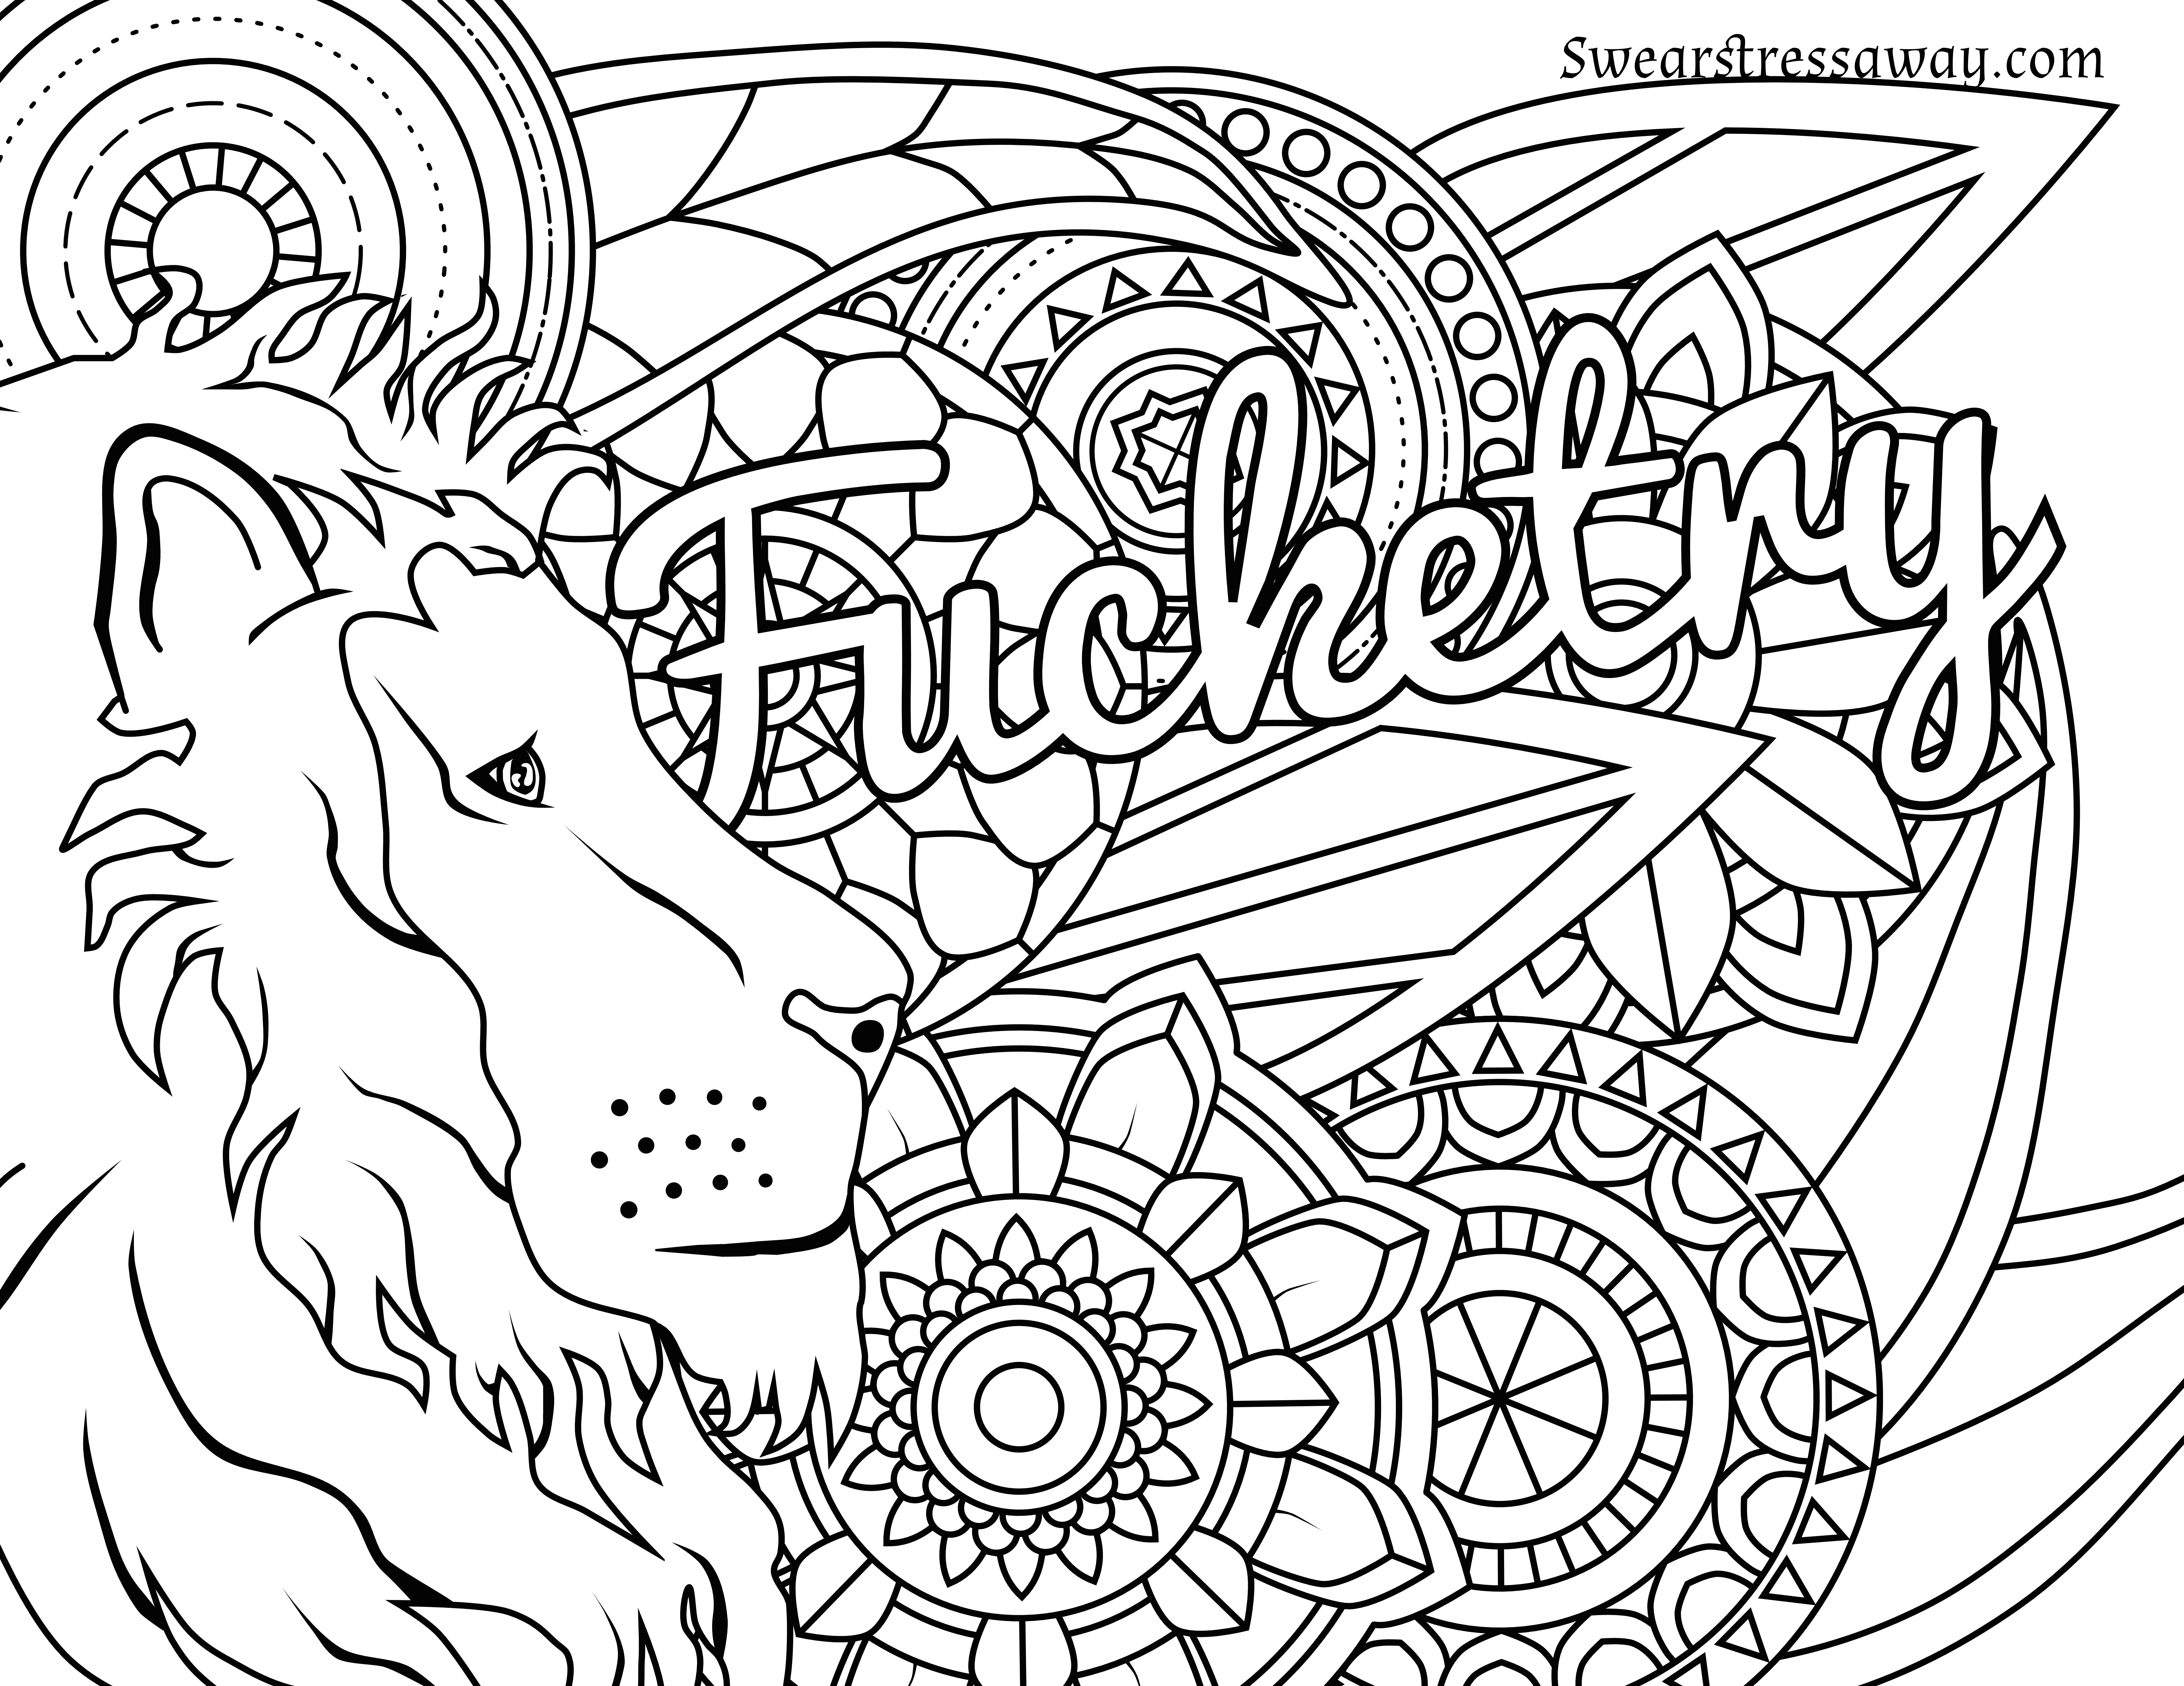 Bad word coloring pages - Fucketry Swear Word Coloring Page Adult Coloring Page Swearstressaway Com Comes